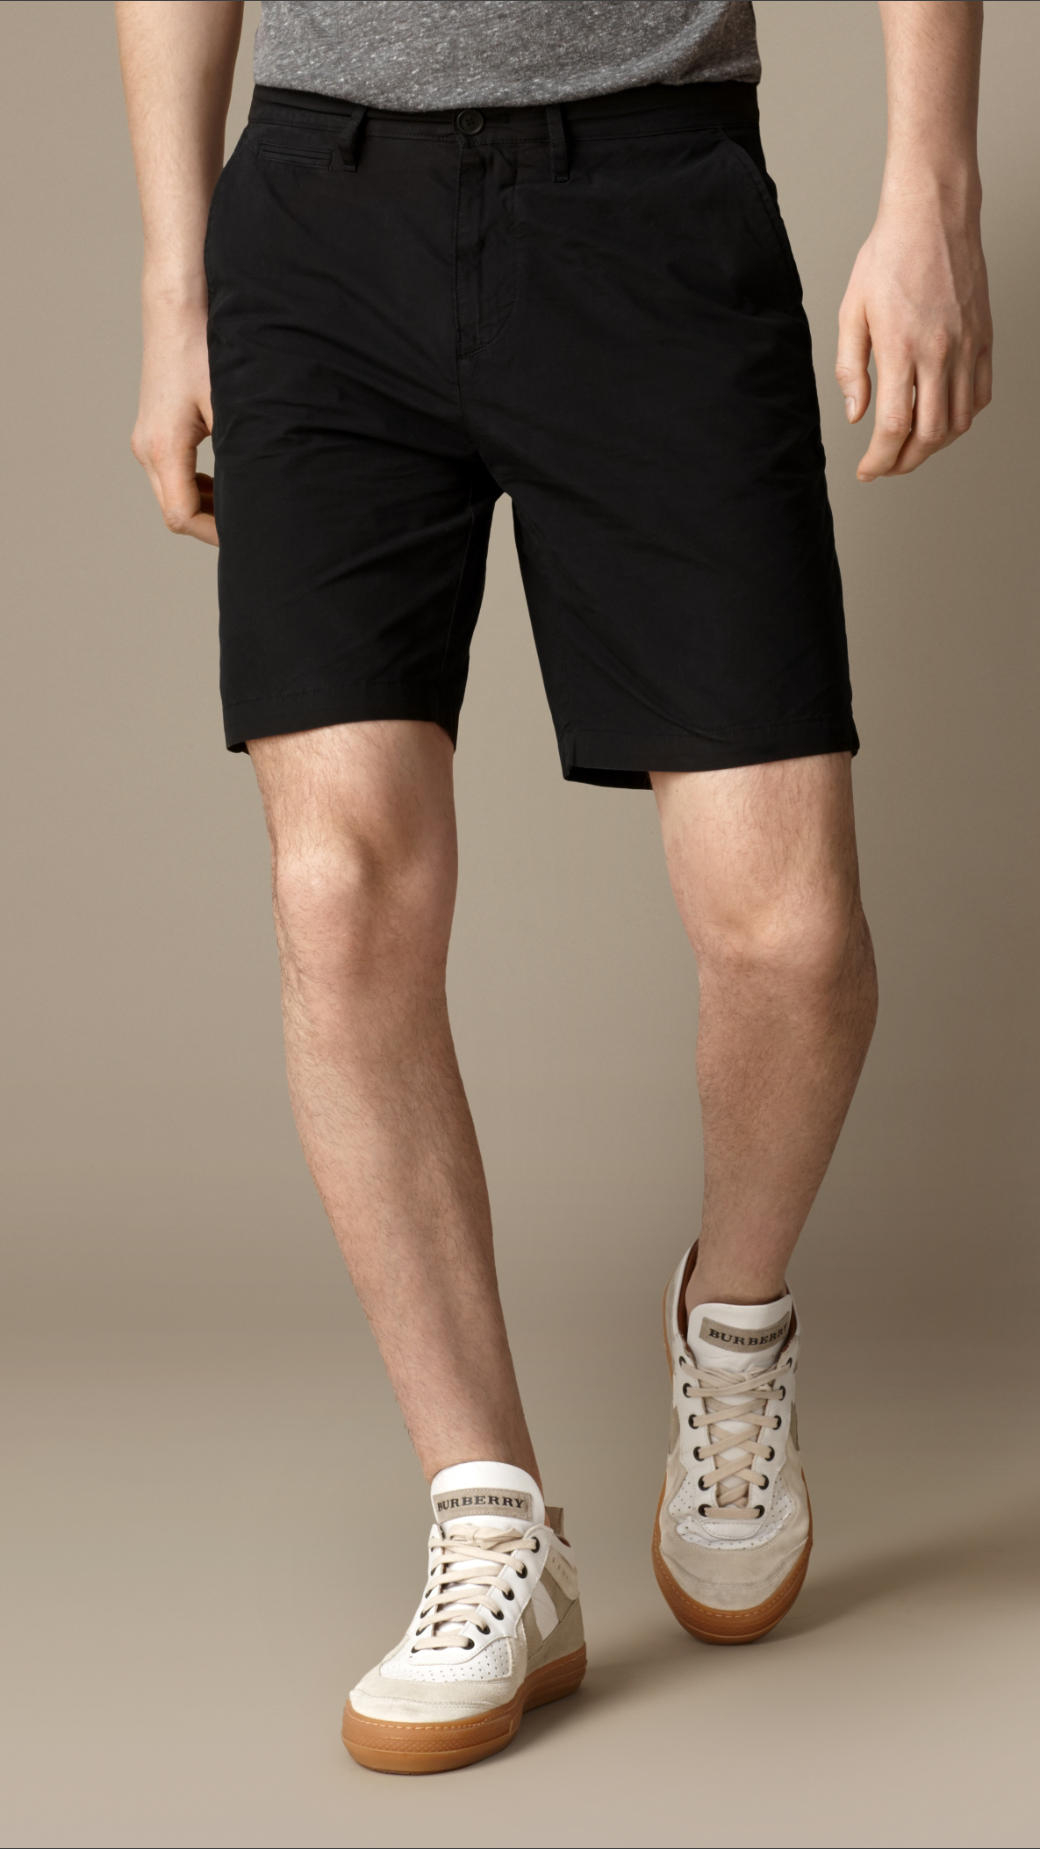 Black Cotton Shorts Mens